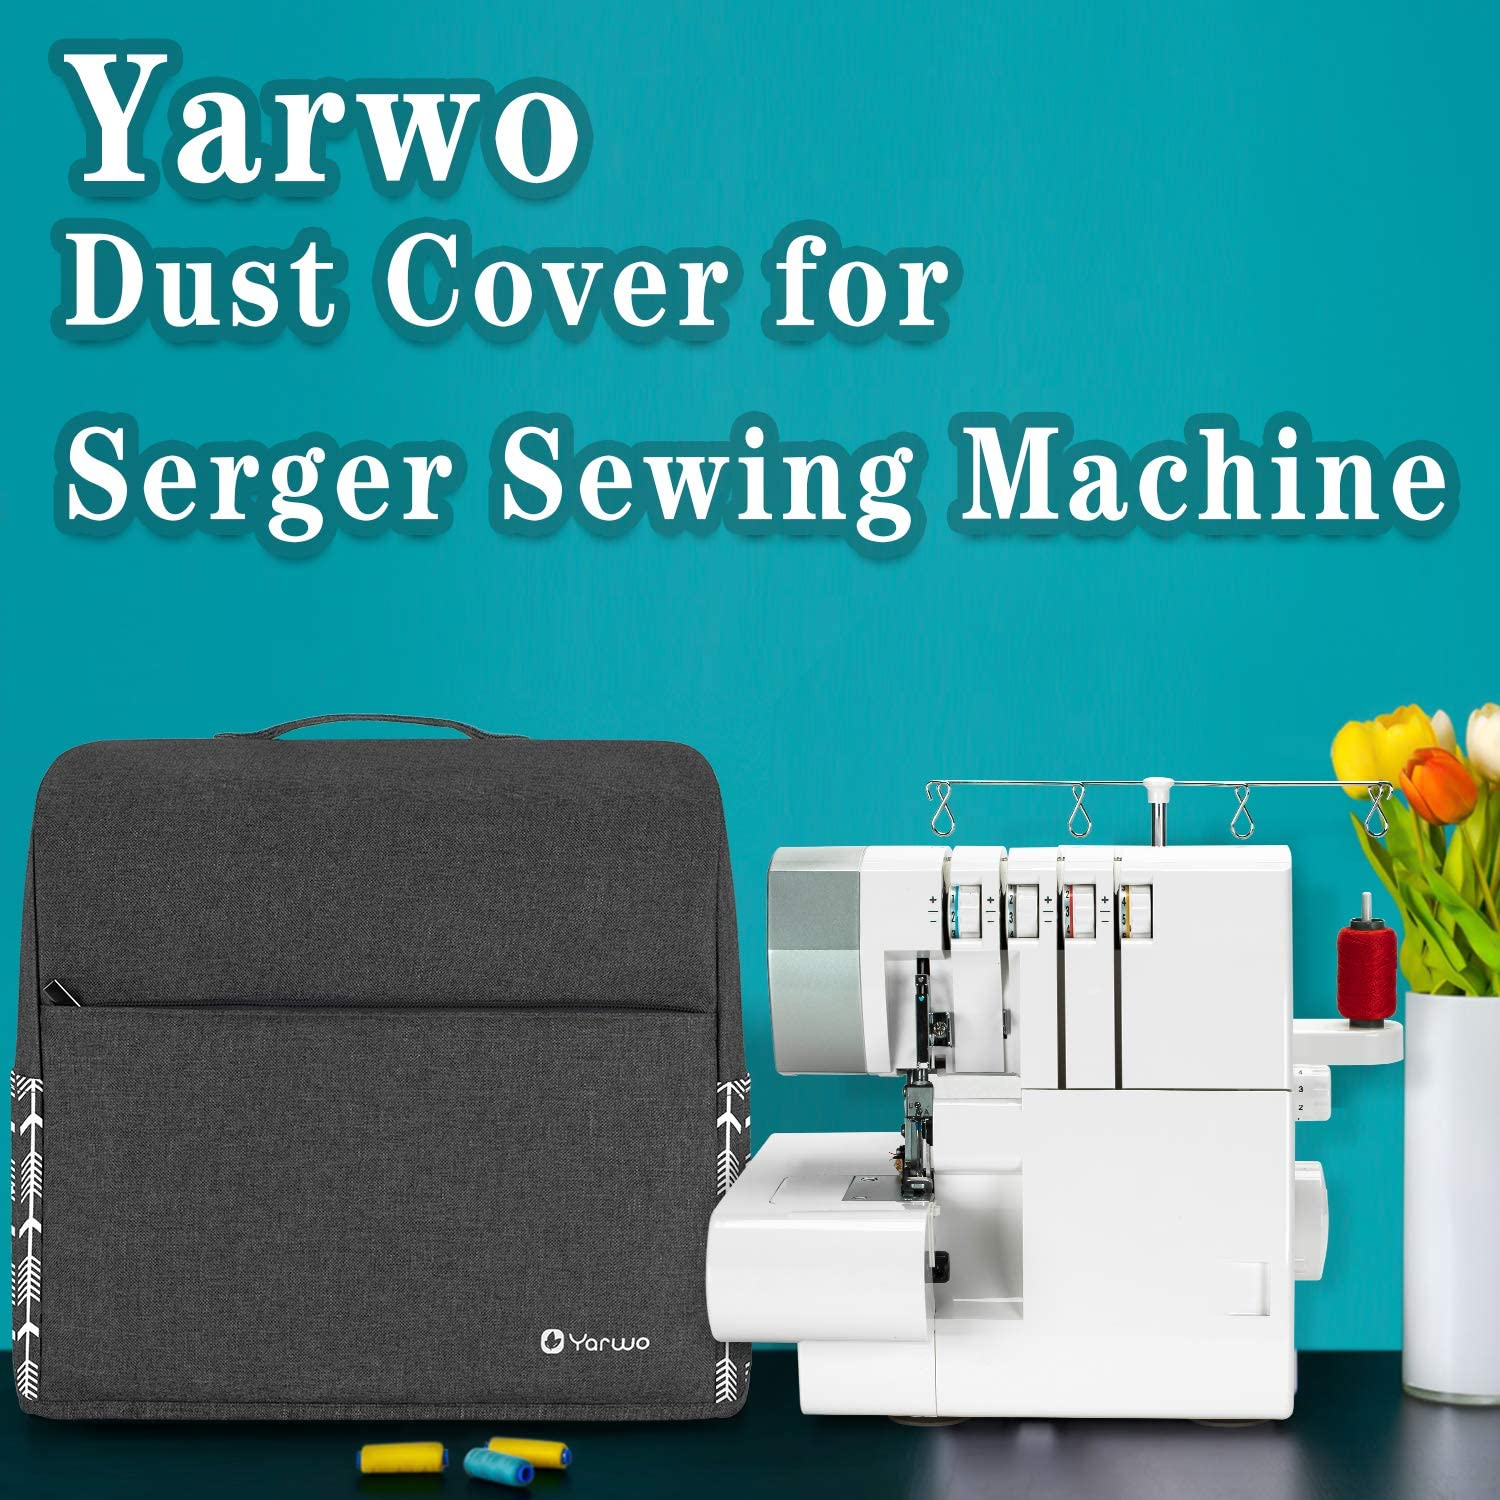 Yarwo Serger Sewing Machine Cover with Top Handle and Pockets Overlock Machine Dust Cover for Most Standard Singer or Brother Serger Gray with Arrow